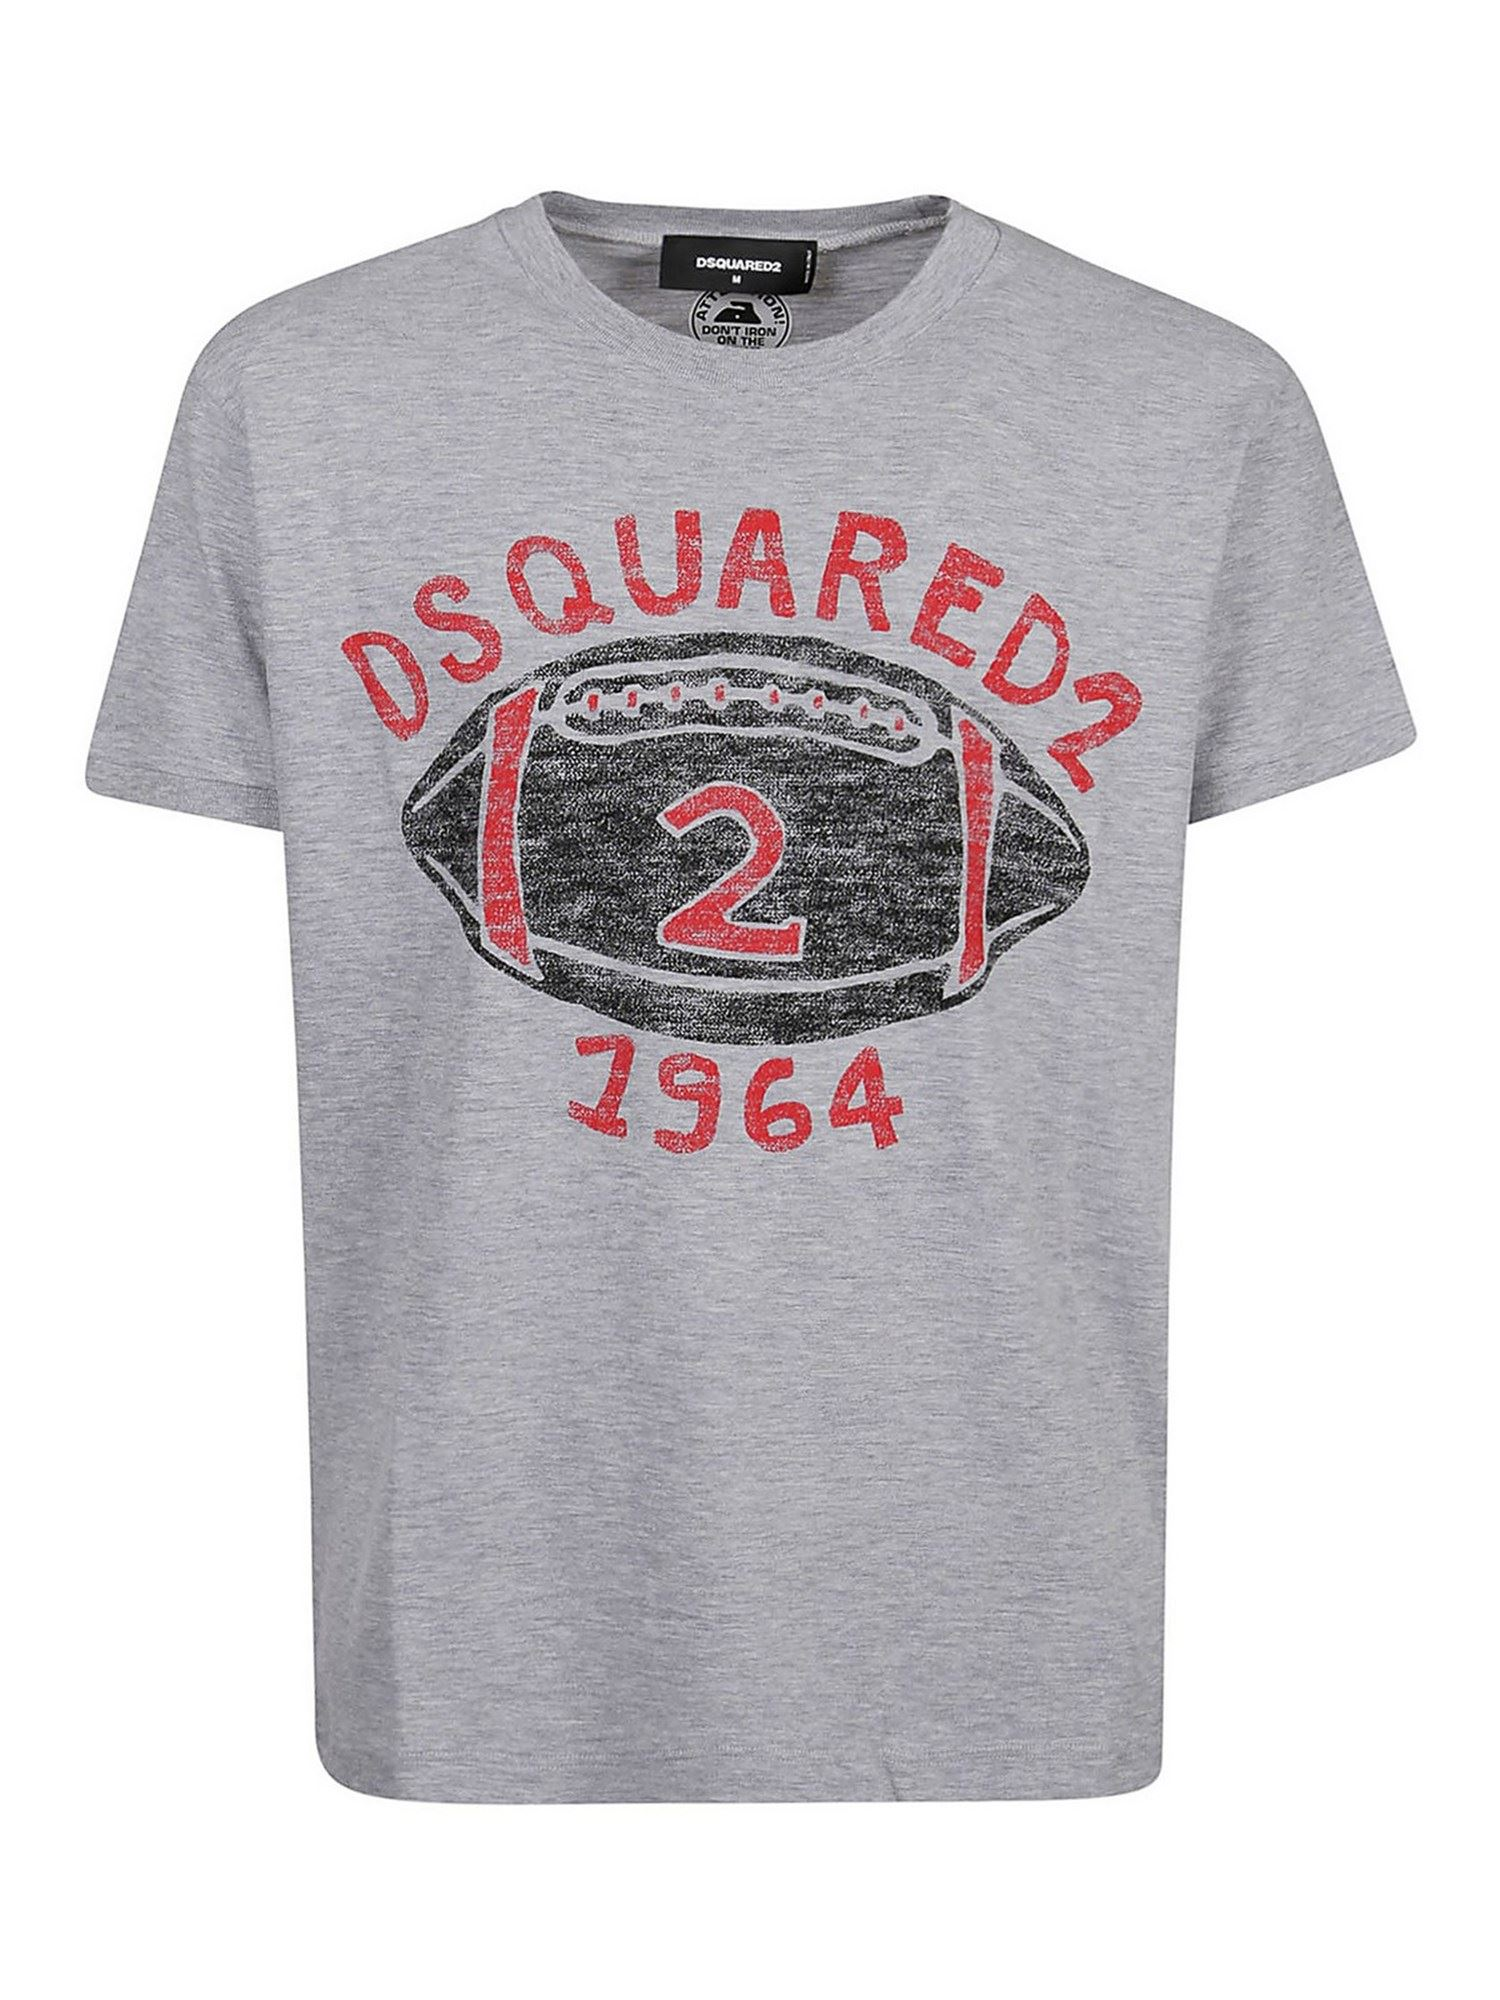 Dsquared2 Logo Printed T-shirt In Grey